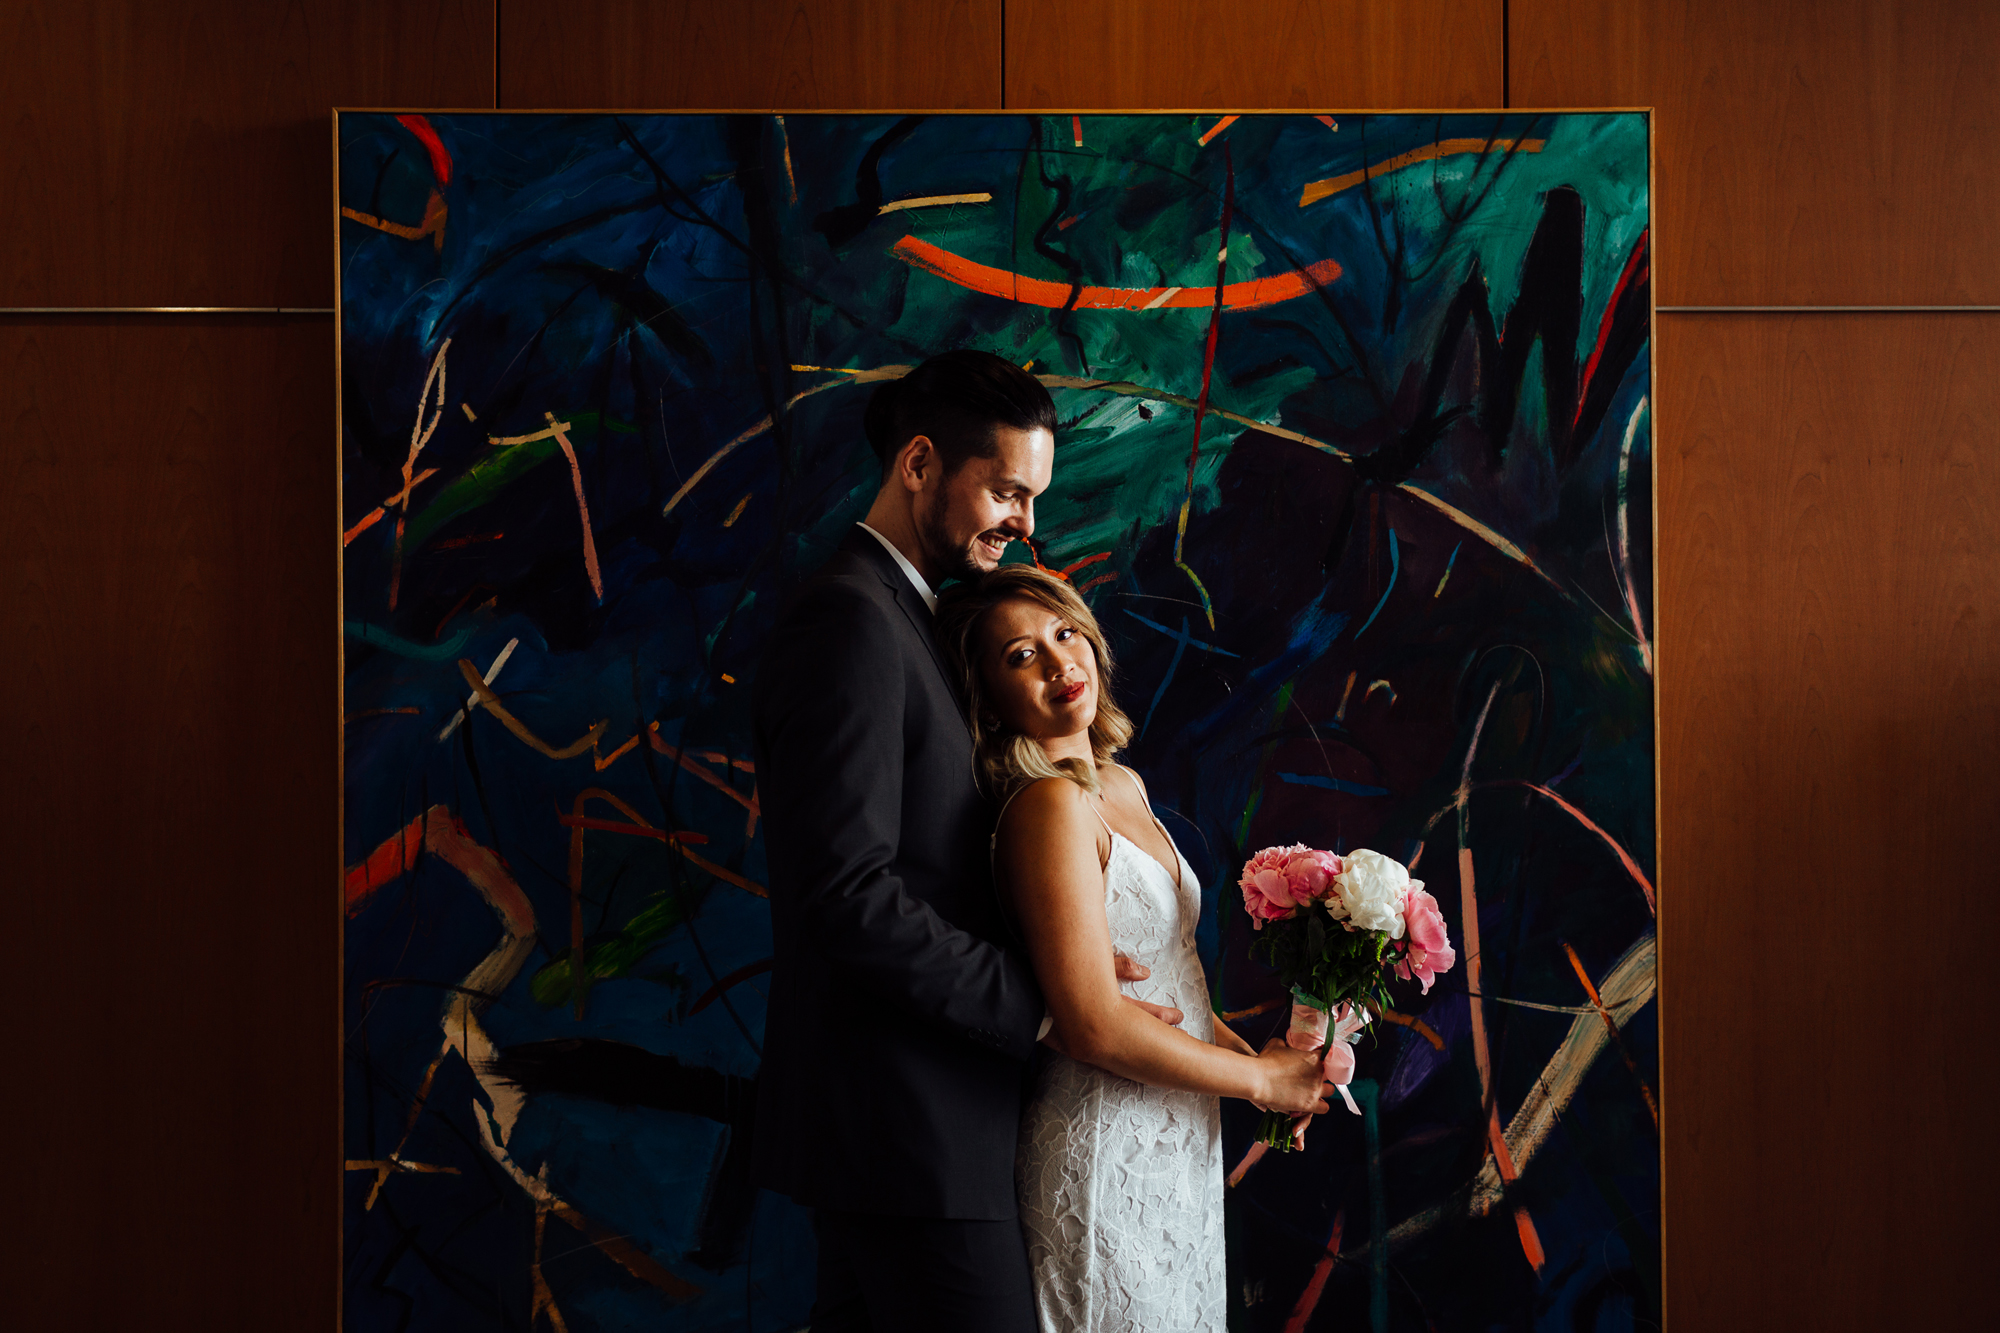 Seattle Rooftop Courthouse Wedding Photos by Krista Welch00010.jpg